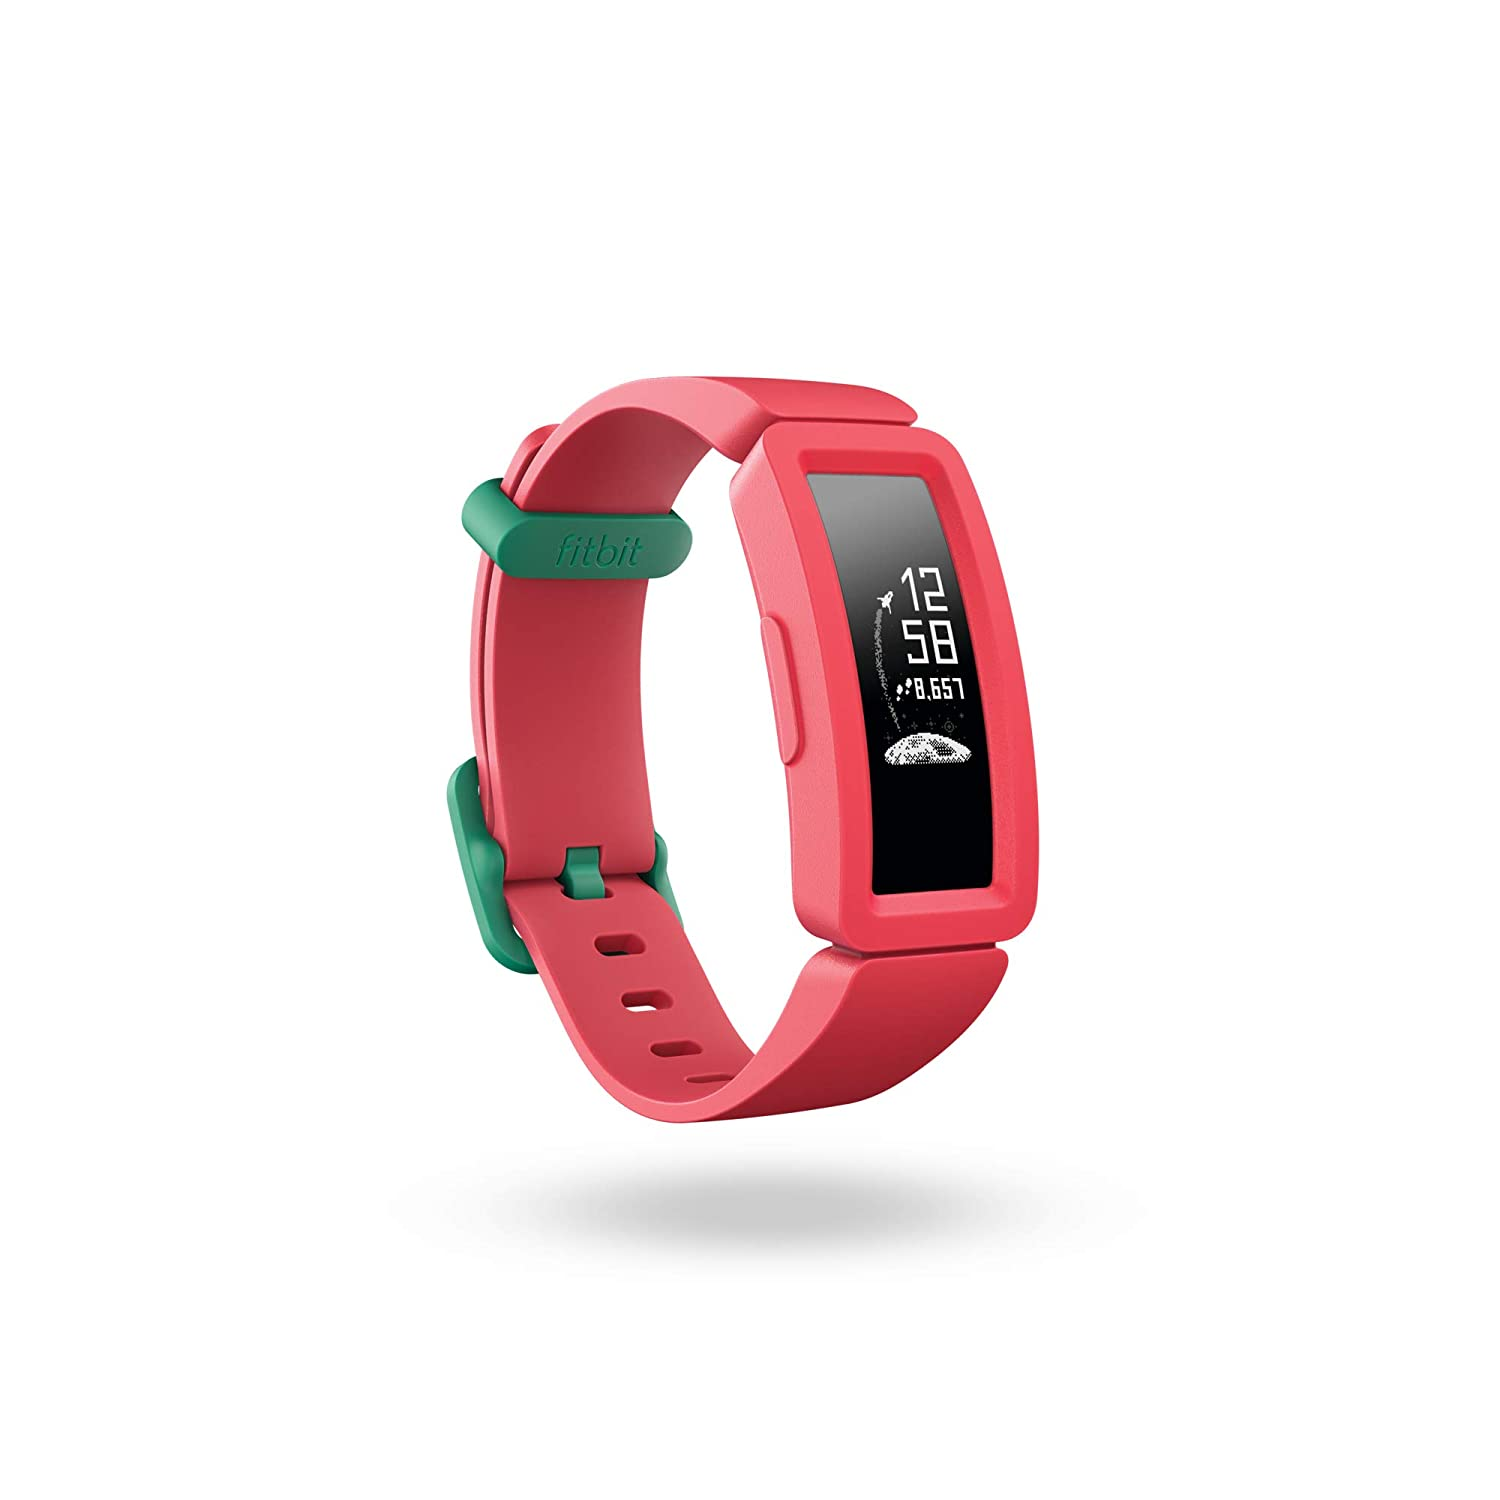 Fitbit Ace 2 Activity Tracker For Kids, One Size by Fitbit